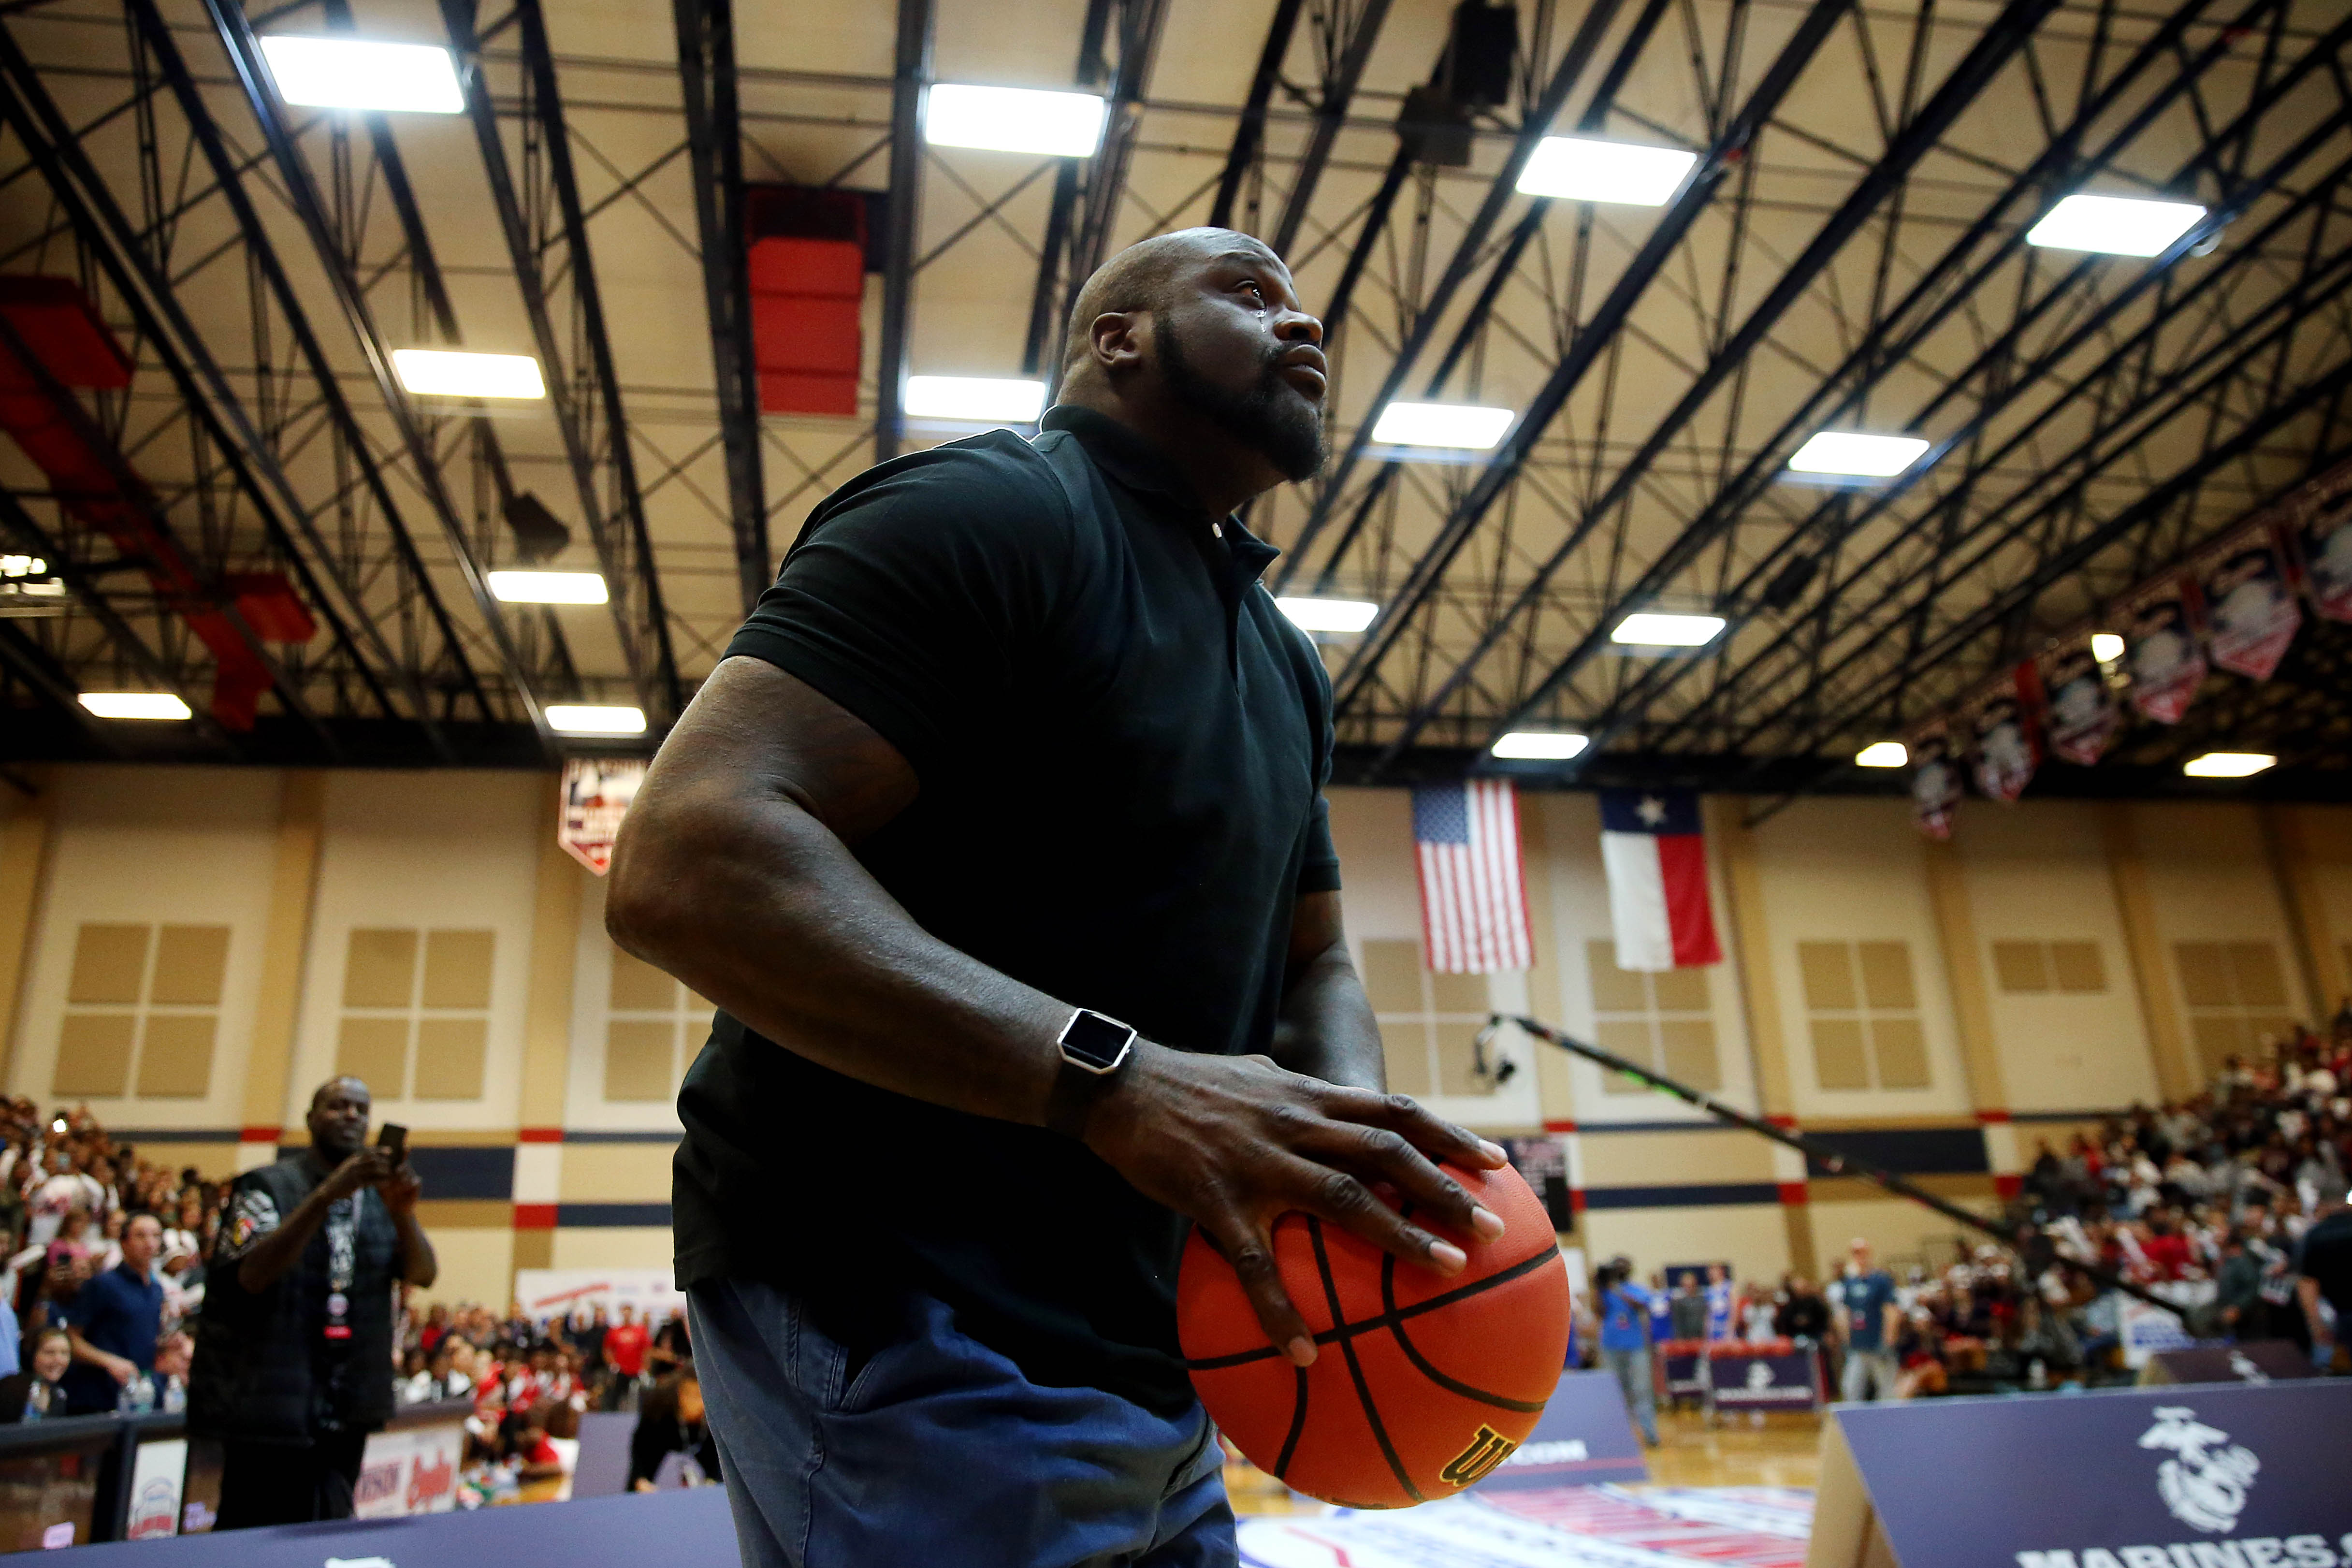 Shaquille O'Neal shoots the ball during the American Family High School Slam and 3-point championship at Dawson High School. Mandatory credit: Peter Casey-USA TODAY Sports ORIG FILE ID: 20160401_pjc_bc1_021.JPG